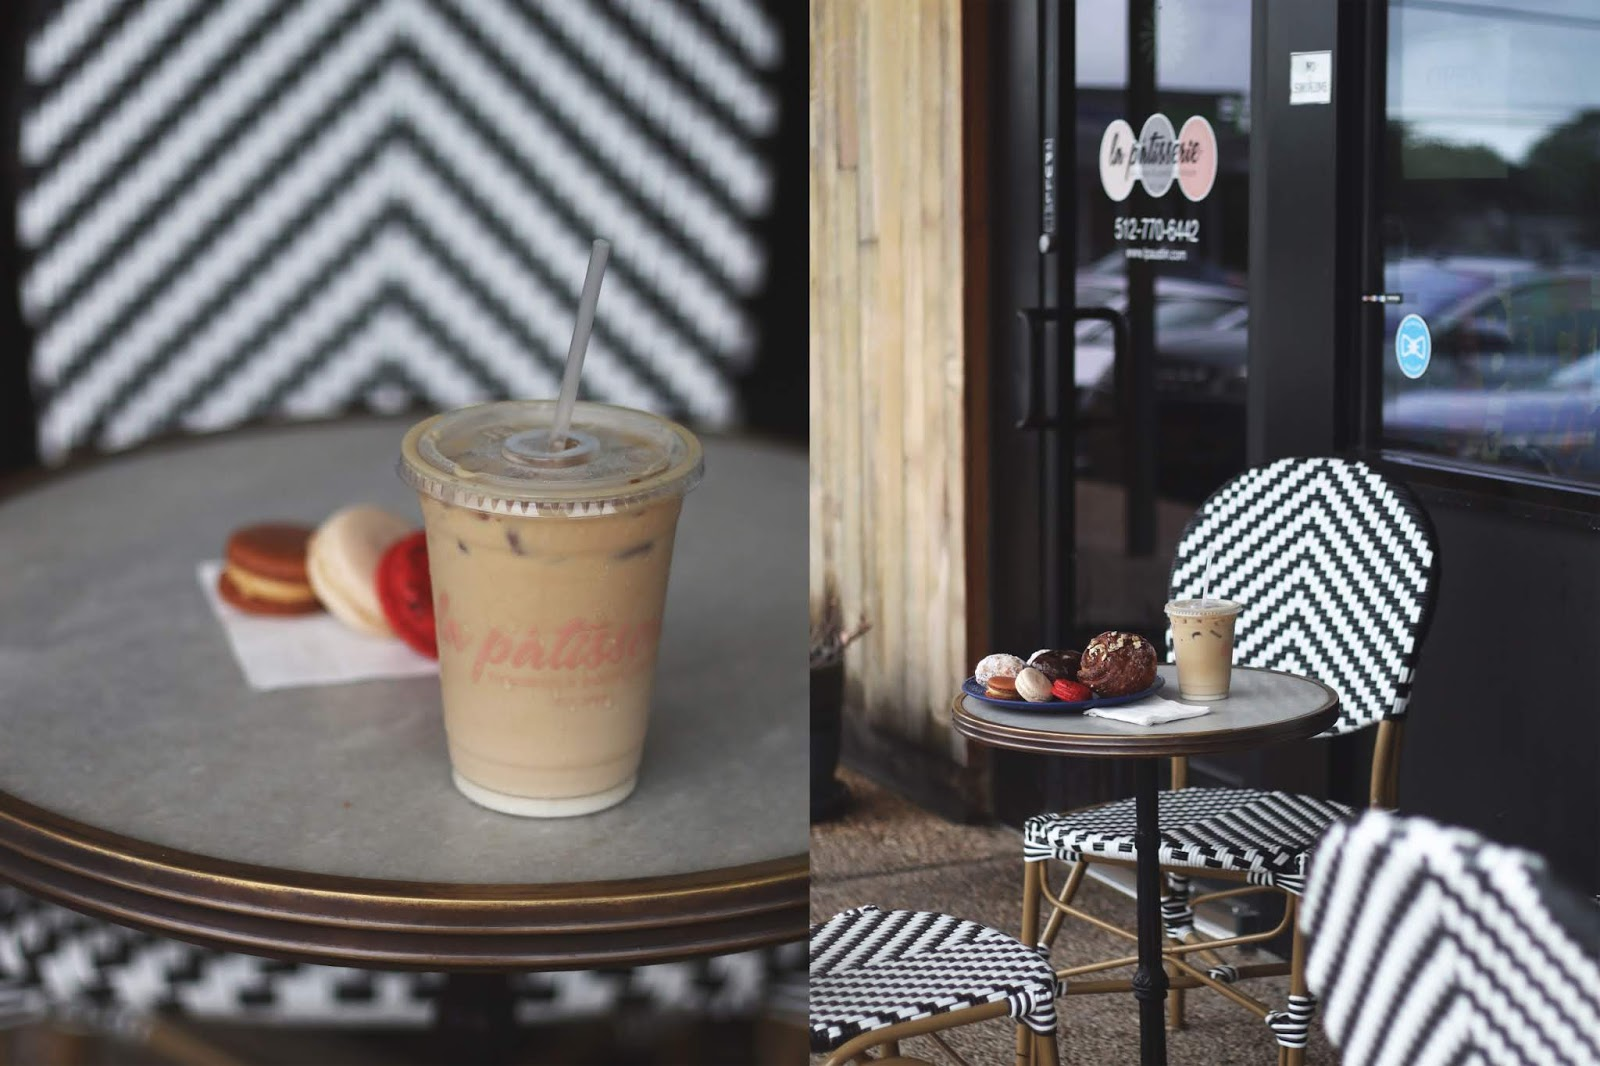 La Patisserre Austin, Iced Coffee, Cozy Coffee Shop, Coffee Shops Vibe